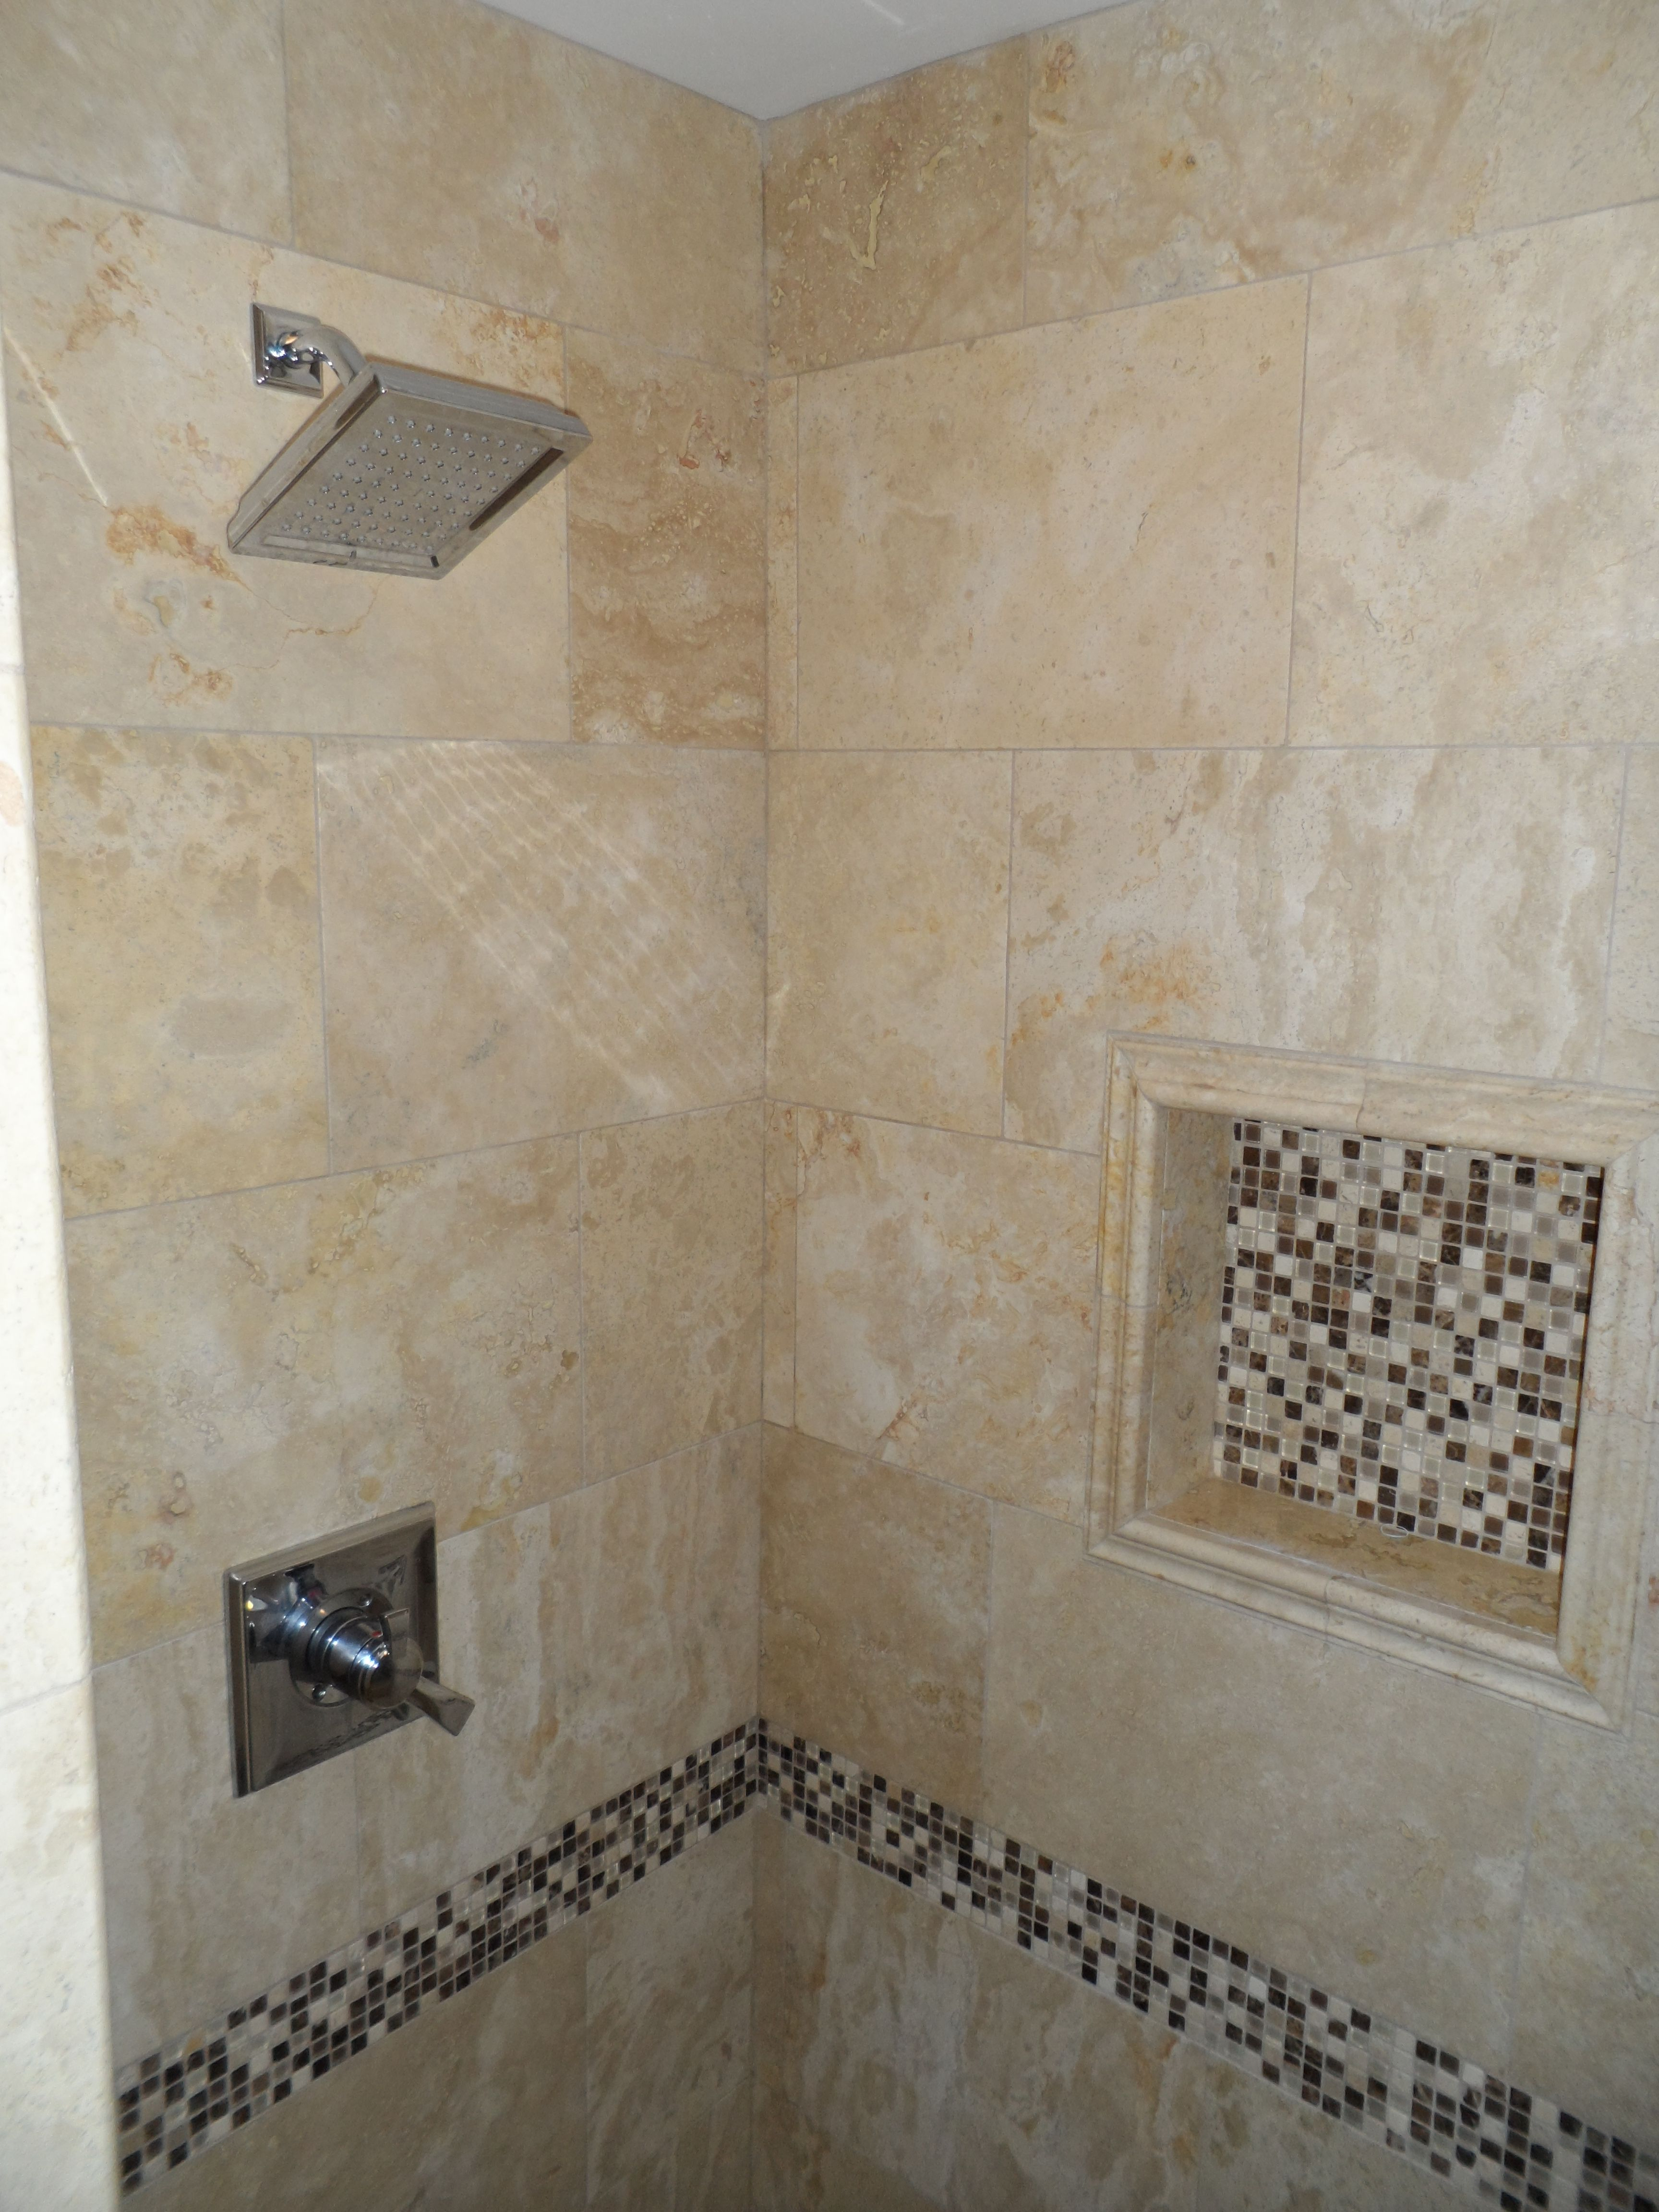 how big soap niche for tile shower - Google Search | Bathroom ...